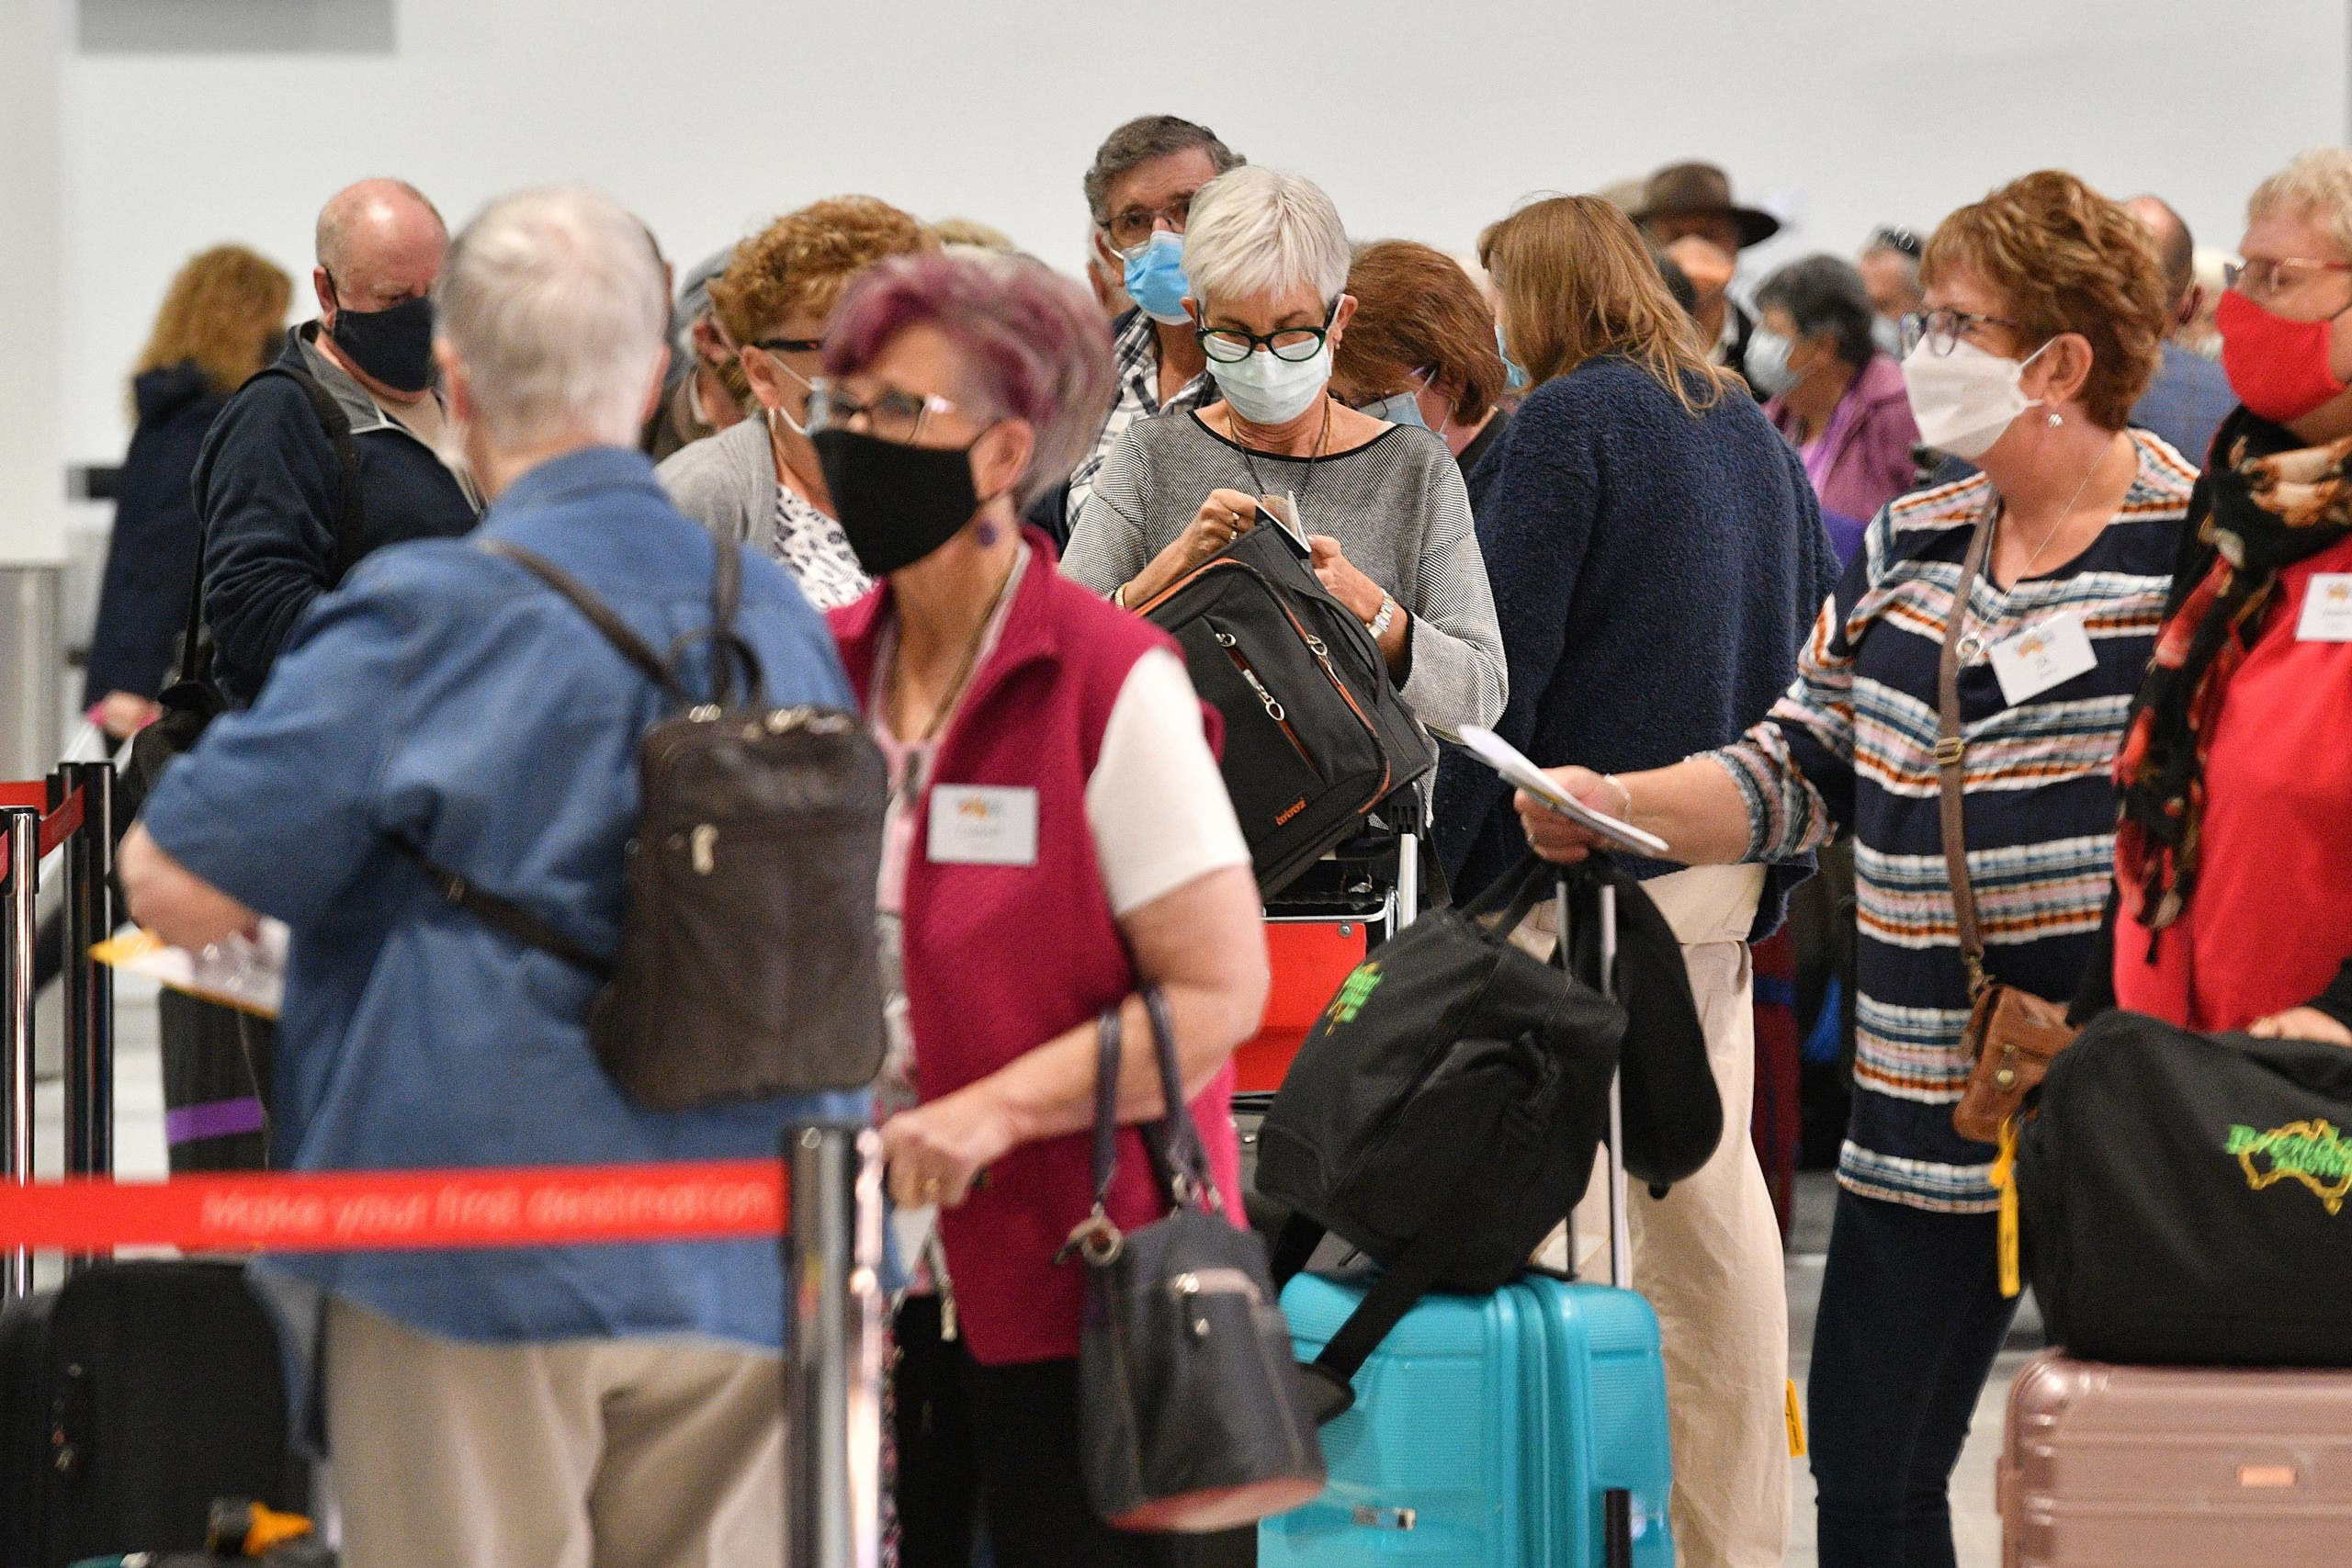 Passengers wait at the check-in counters for New Zealand flights at Sydney International Airport on April 19, 2021, as Australia and New Zealand opened a trans-Tasman quarantine-free travel bubble. (File photo: AFP)